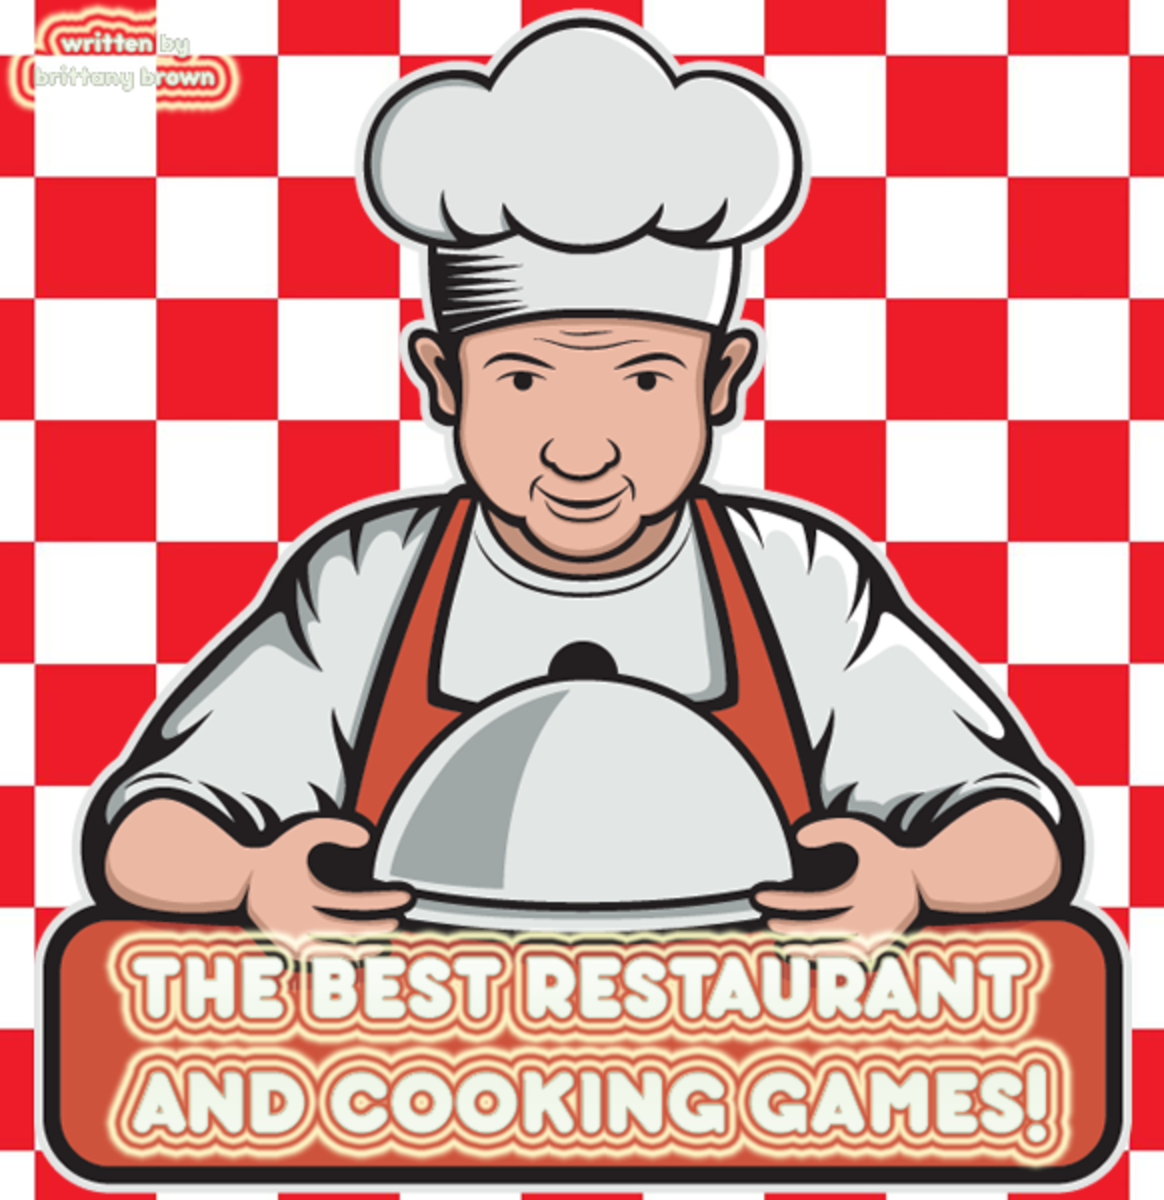 The best restaurant and cooking games for iOS and Android!